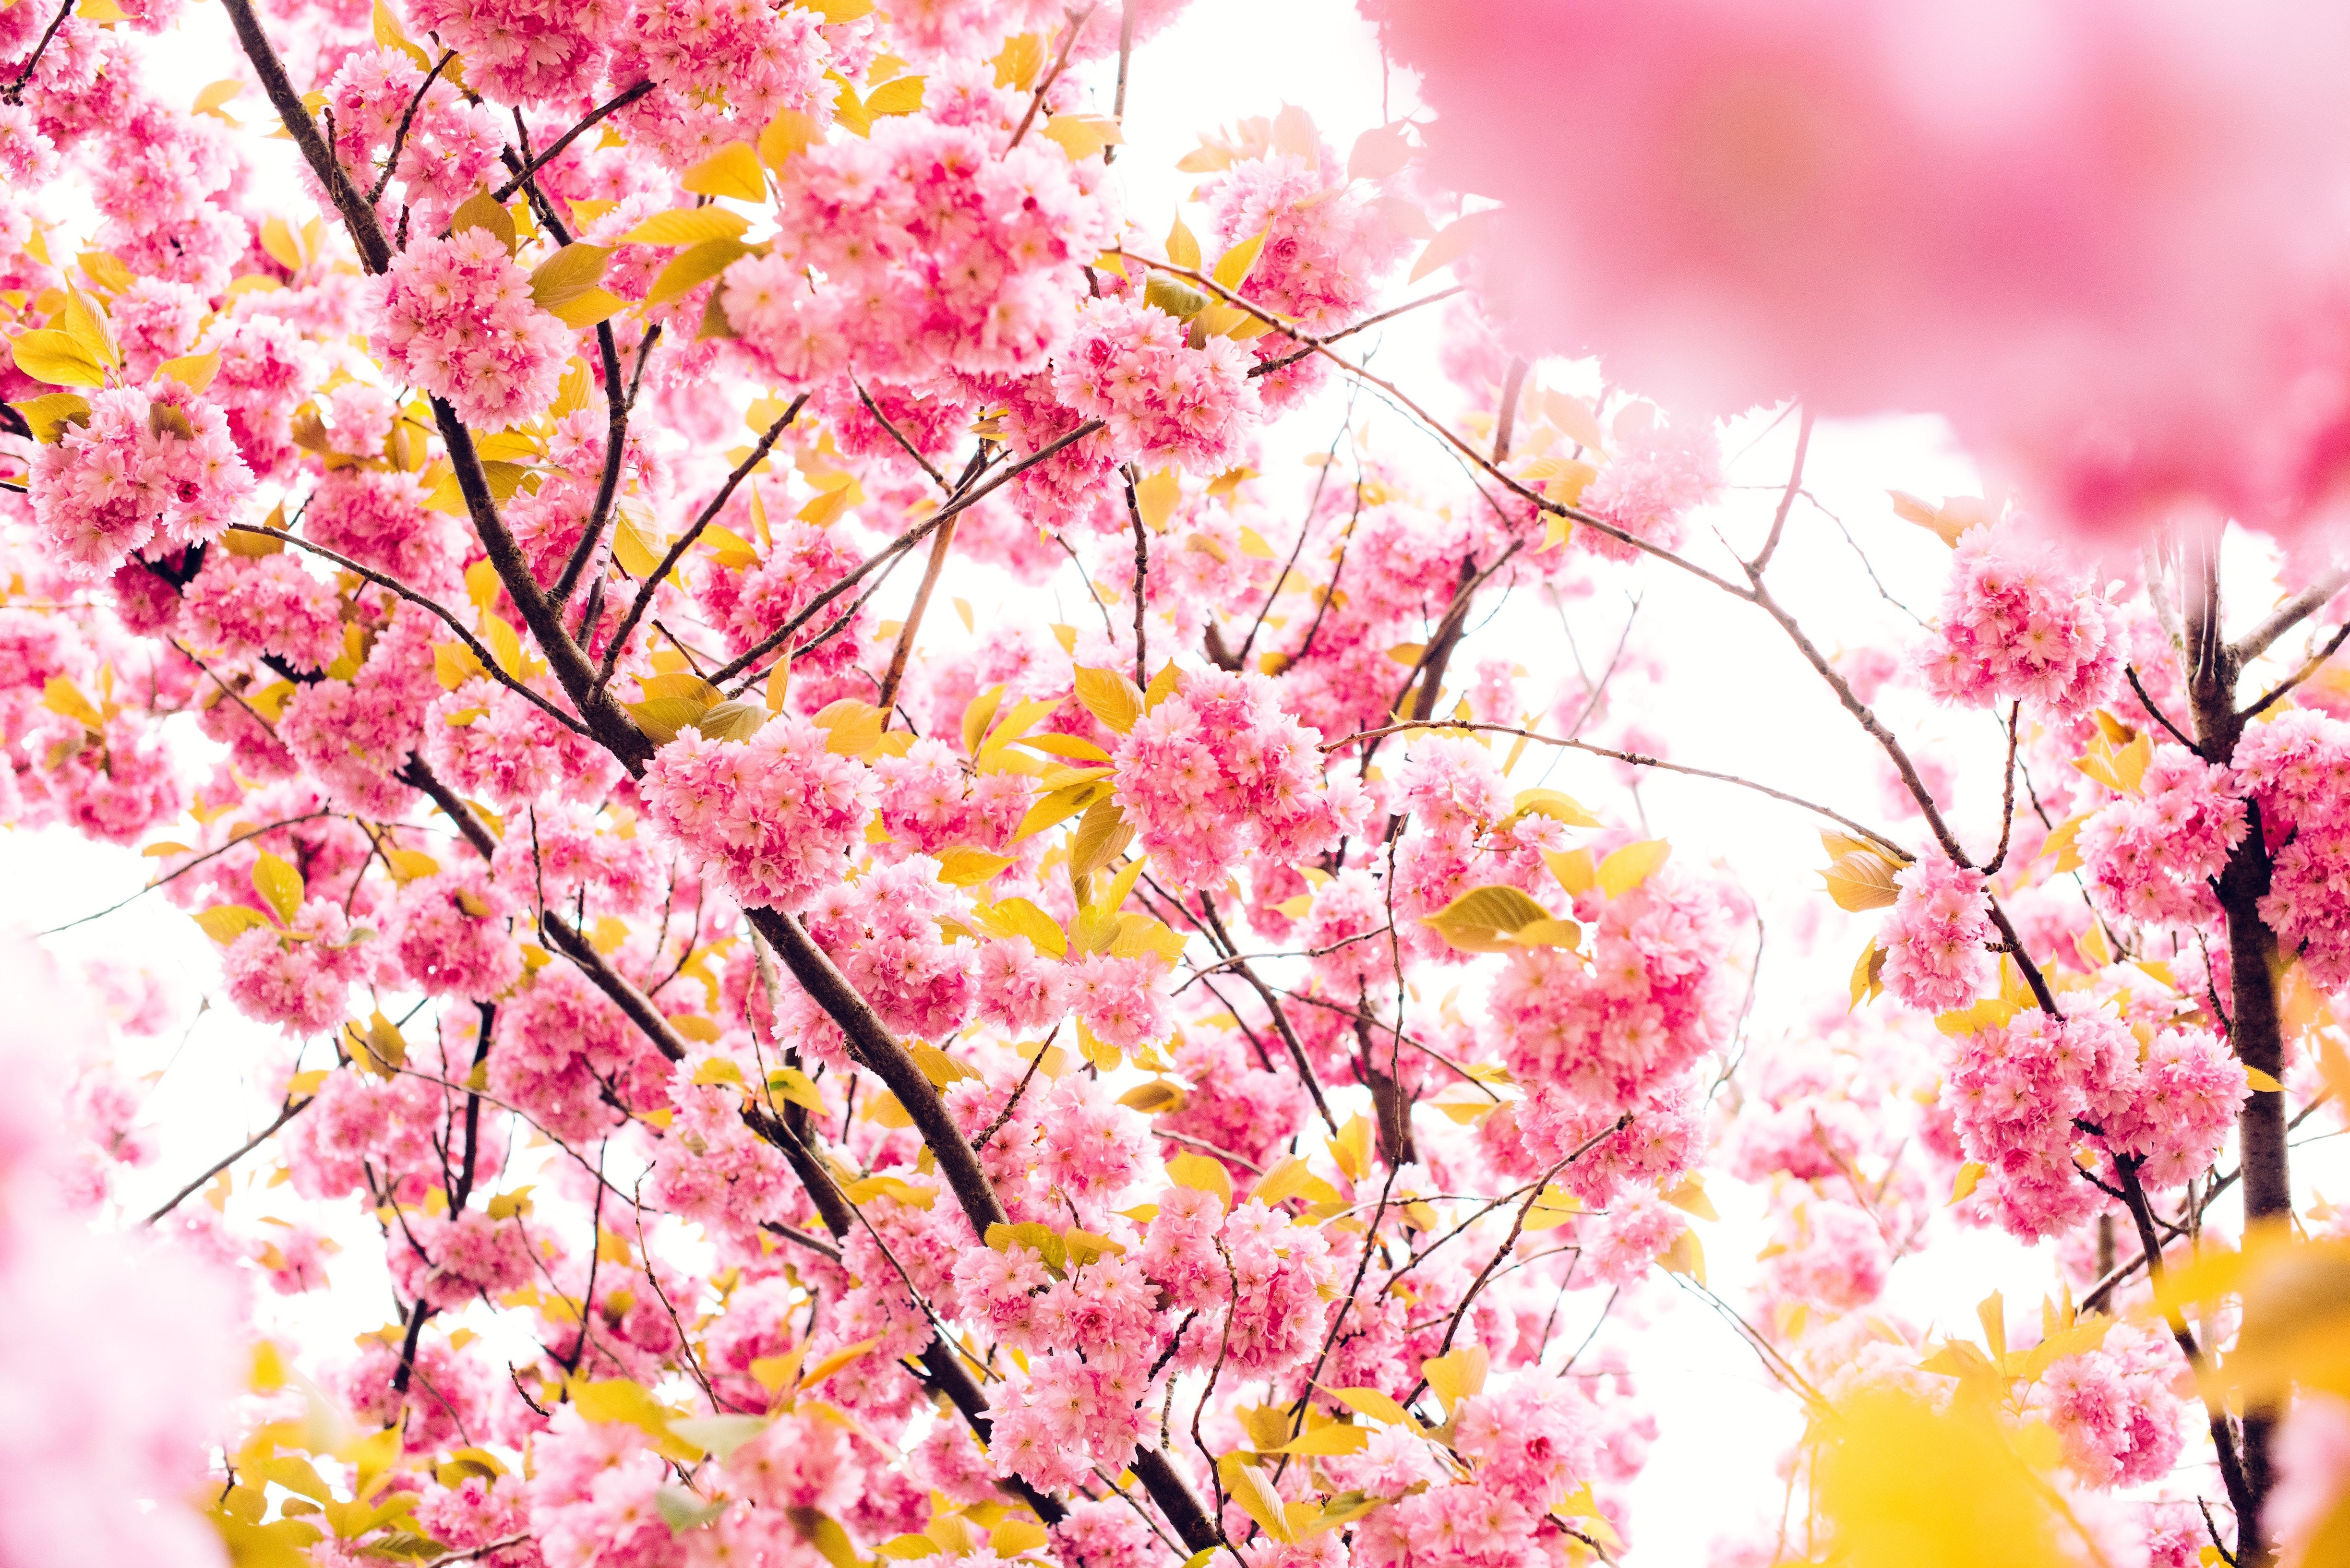 Trees In Spring Spring Cover Photos Blossom Trees Cherry Blossom Tree